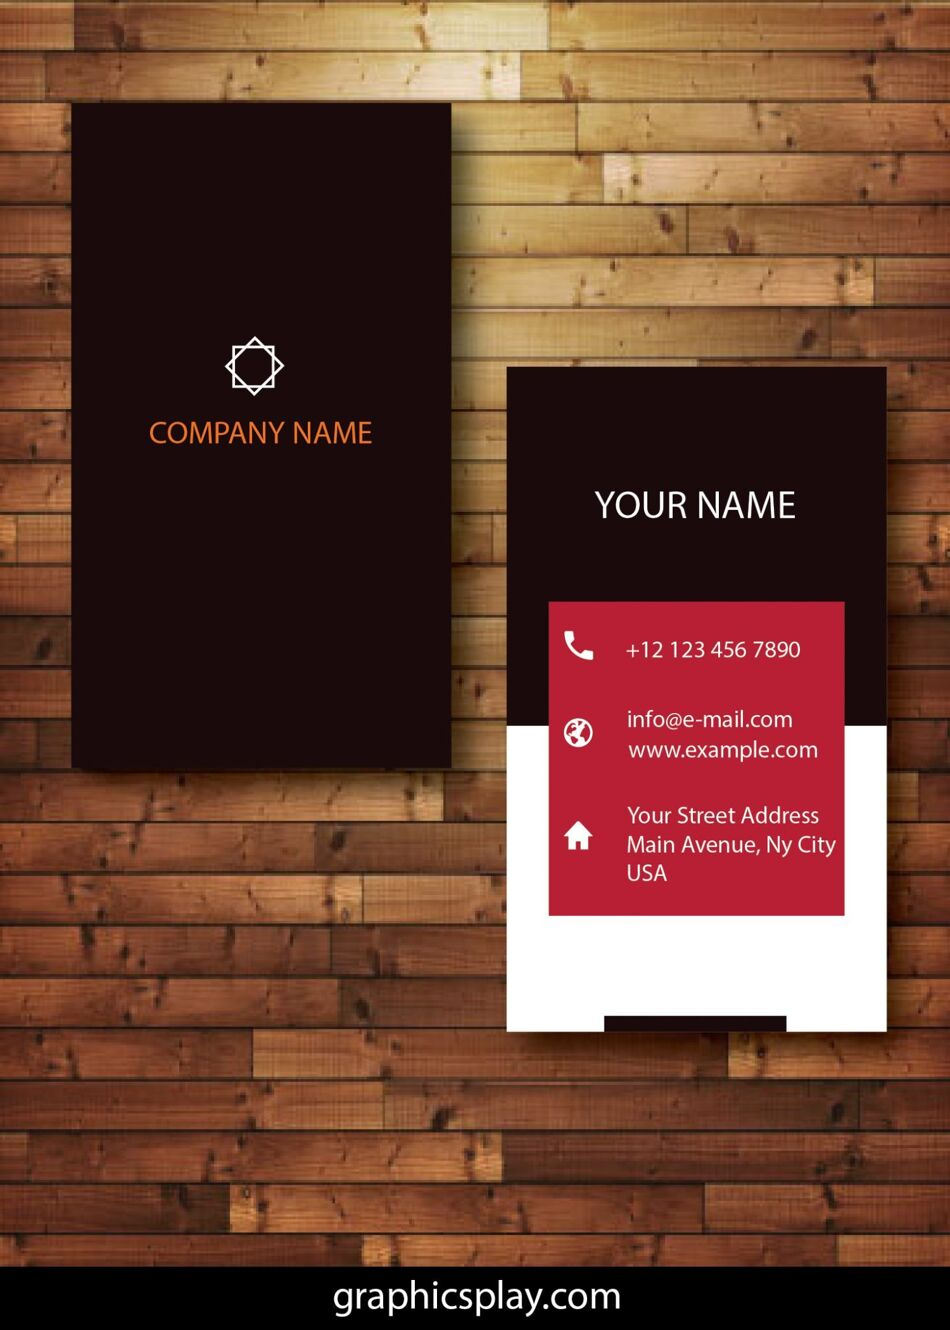 Business Card Design Vector Template - ID 4142 1